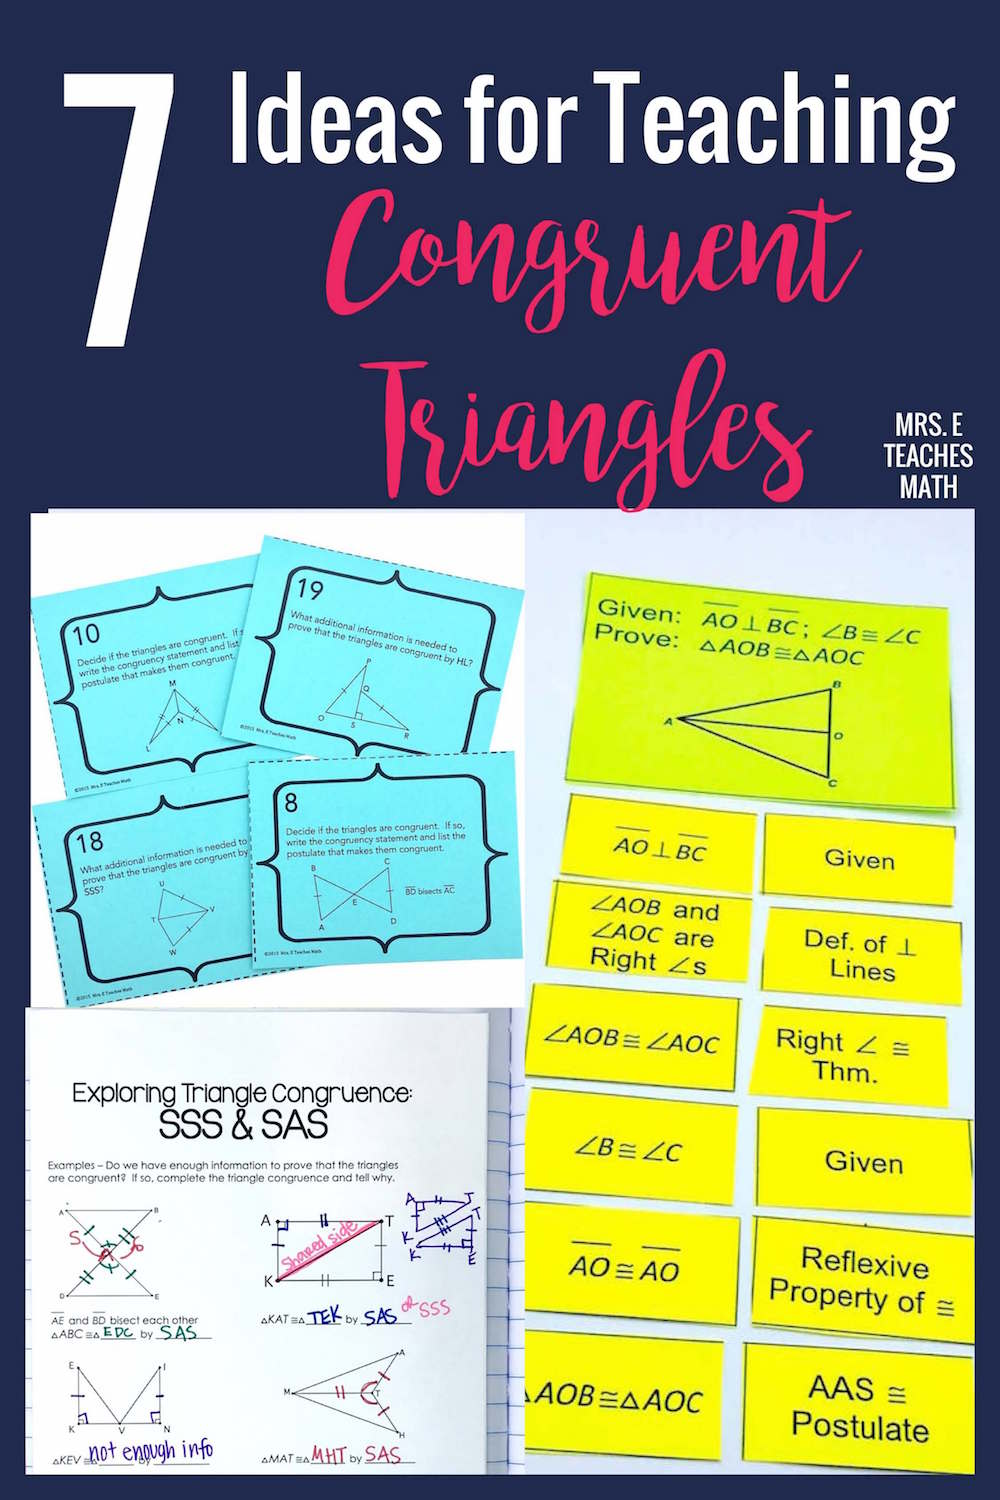 hight resolution of 7 Ideas for Teaching Congruent Triangles   Mrs. E Teaches Math